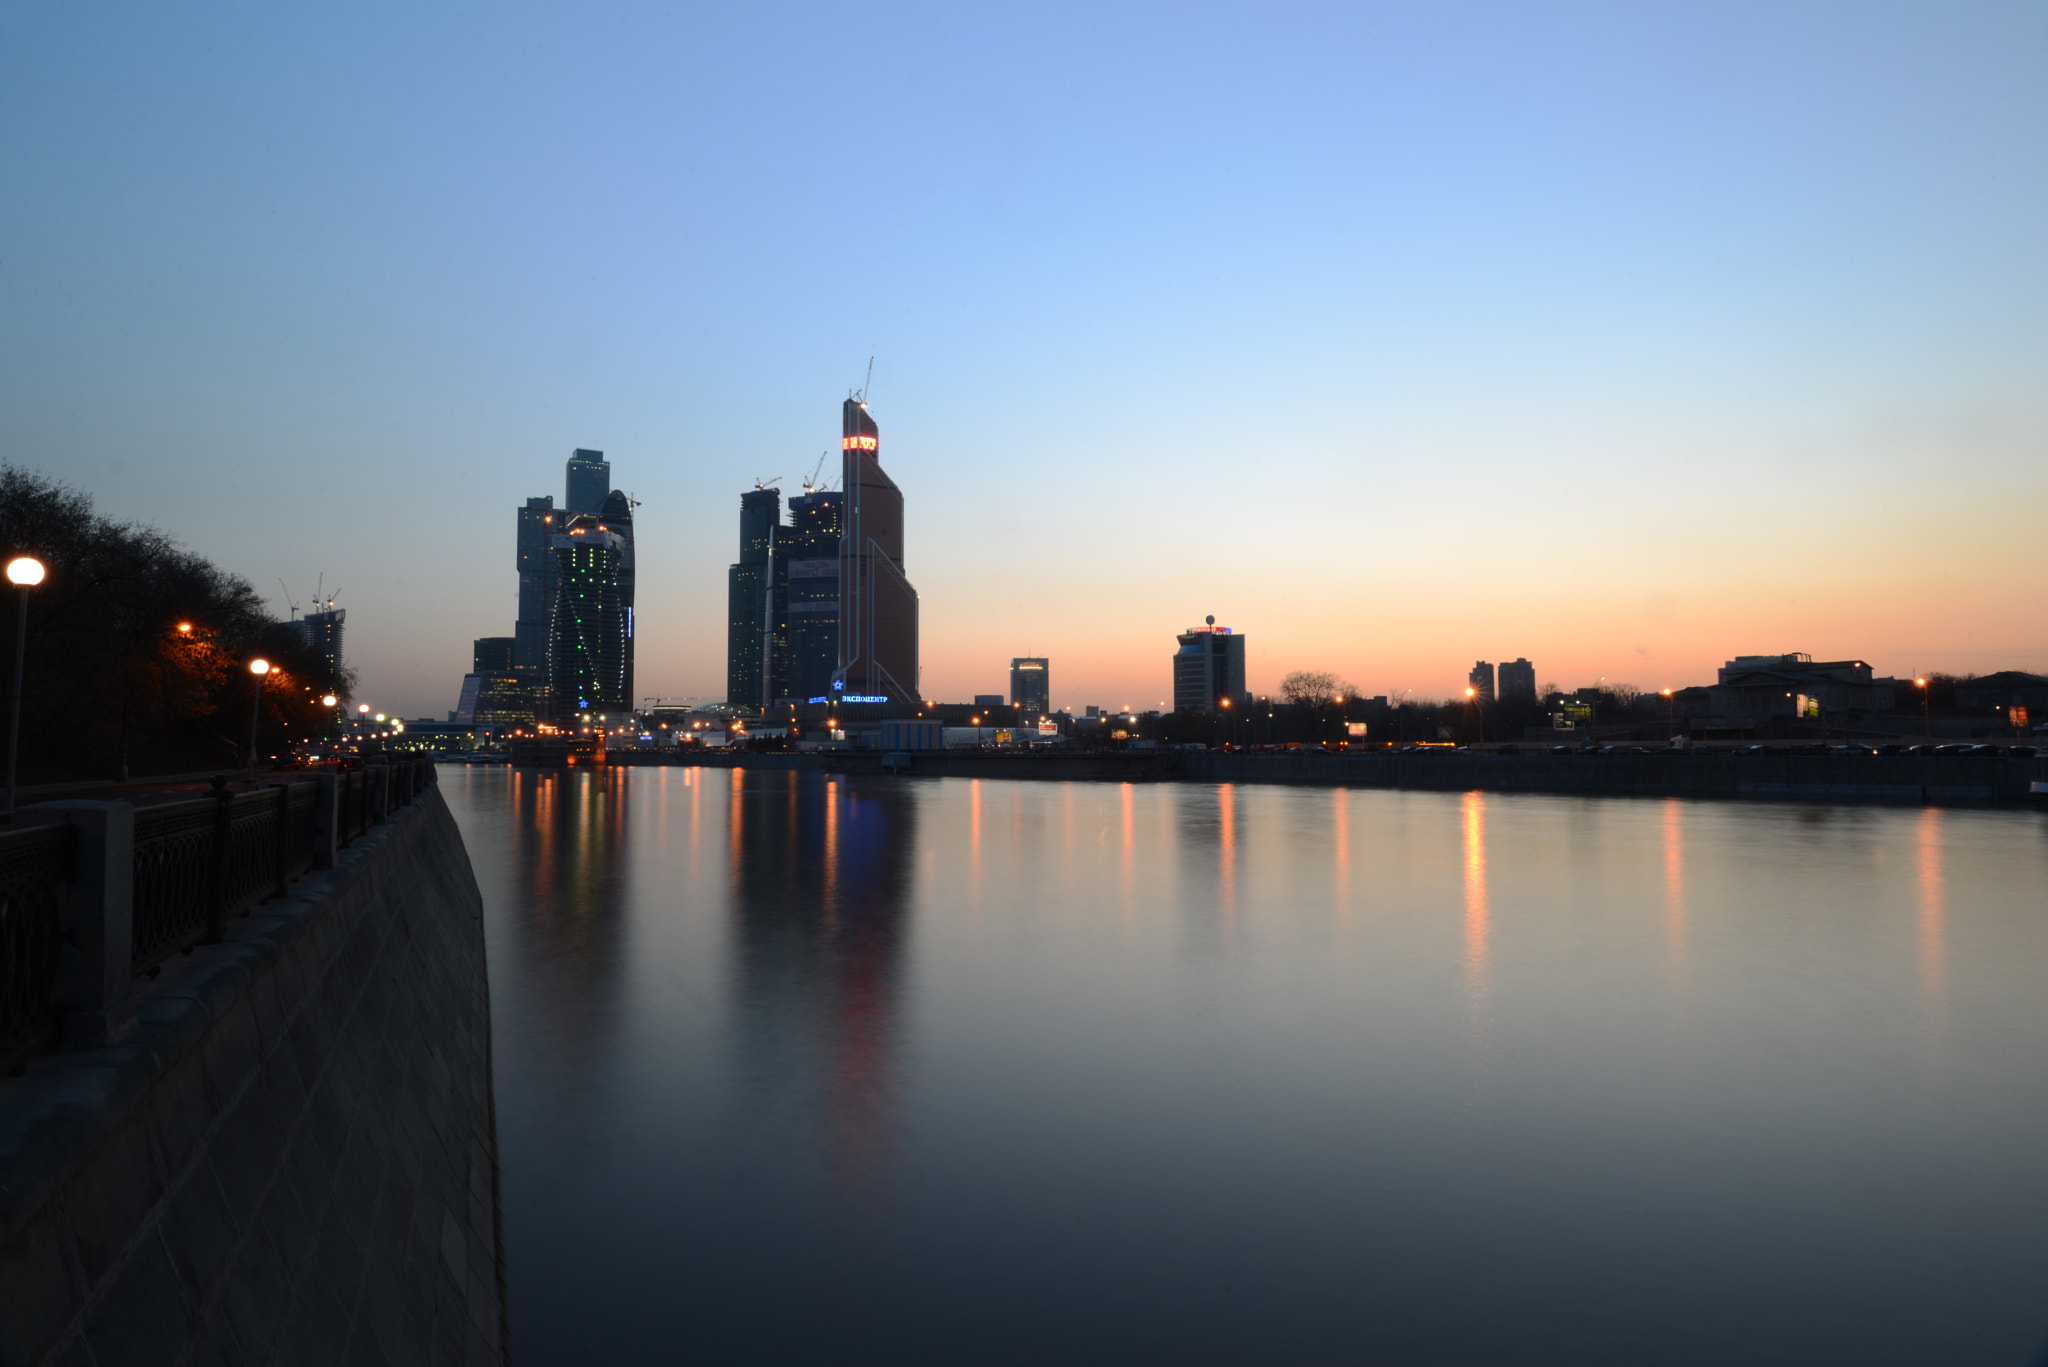 Photograph Moscow City in the evening by Igor Zabara on 500px